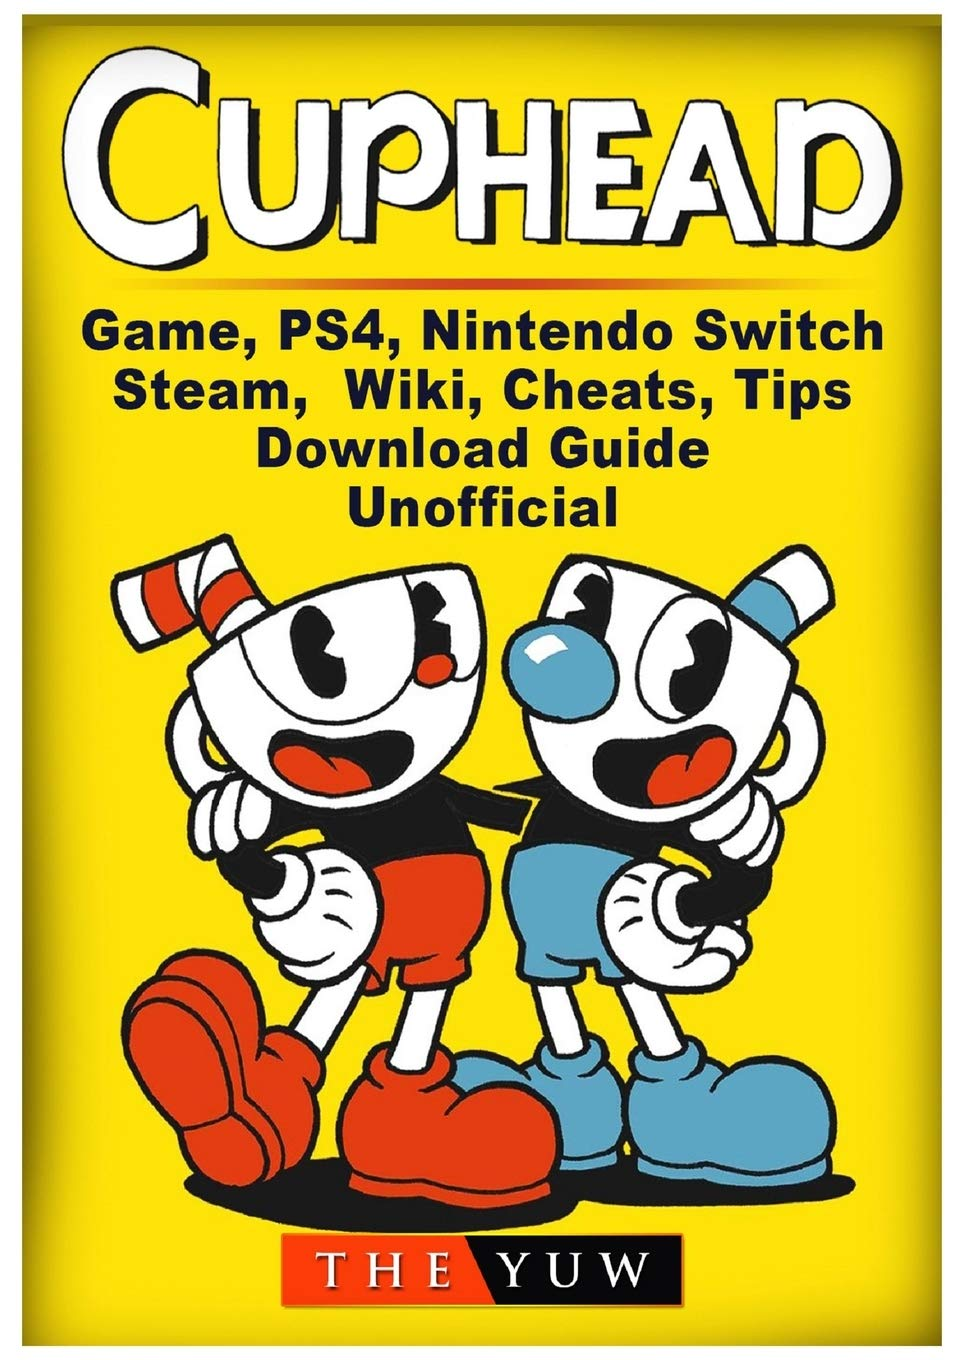 Cuphead Game Ps4 Nintendo Switch Steam Wiki Cheats Tips Download Guide Unofficial Yuw The 9781387988754 Amazon Com Books